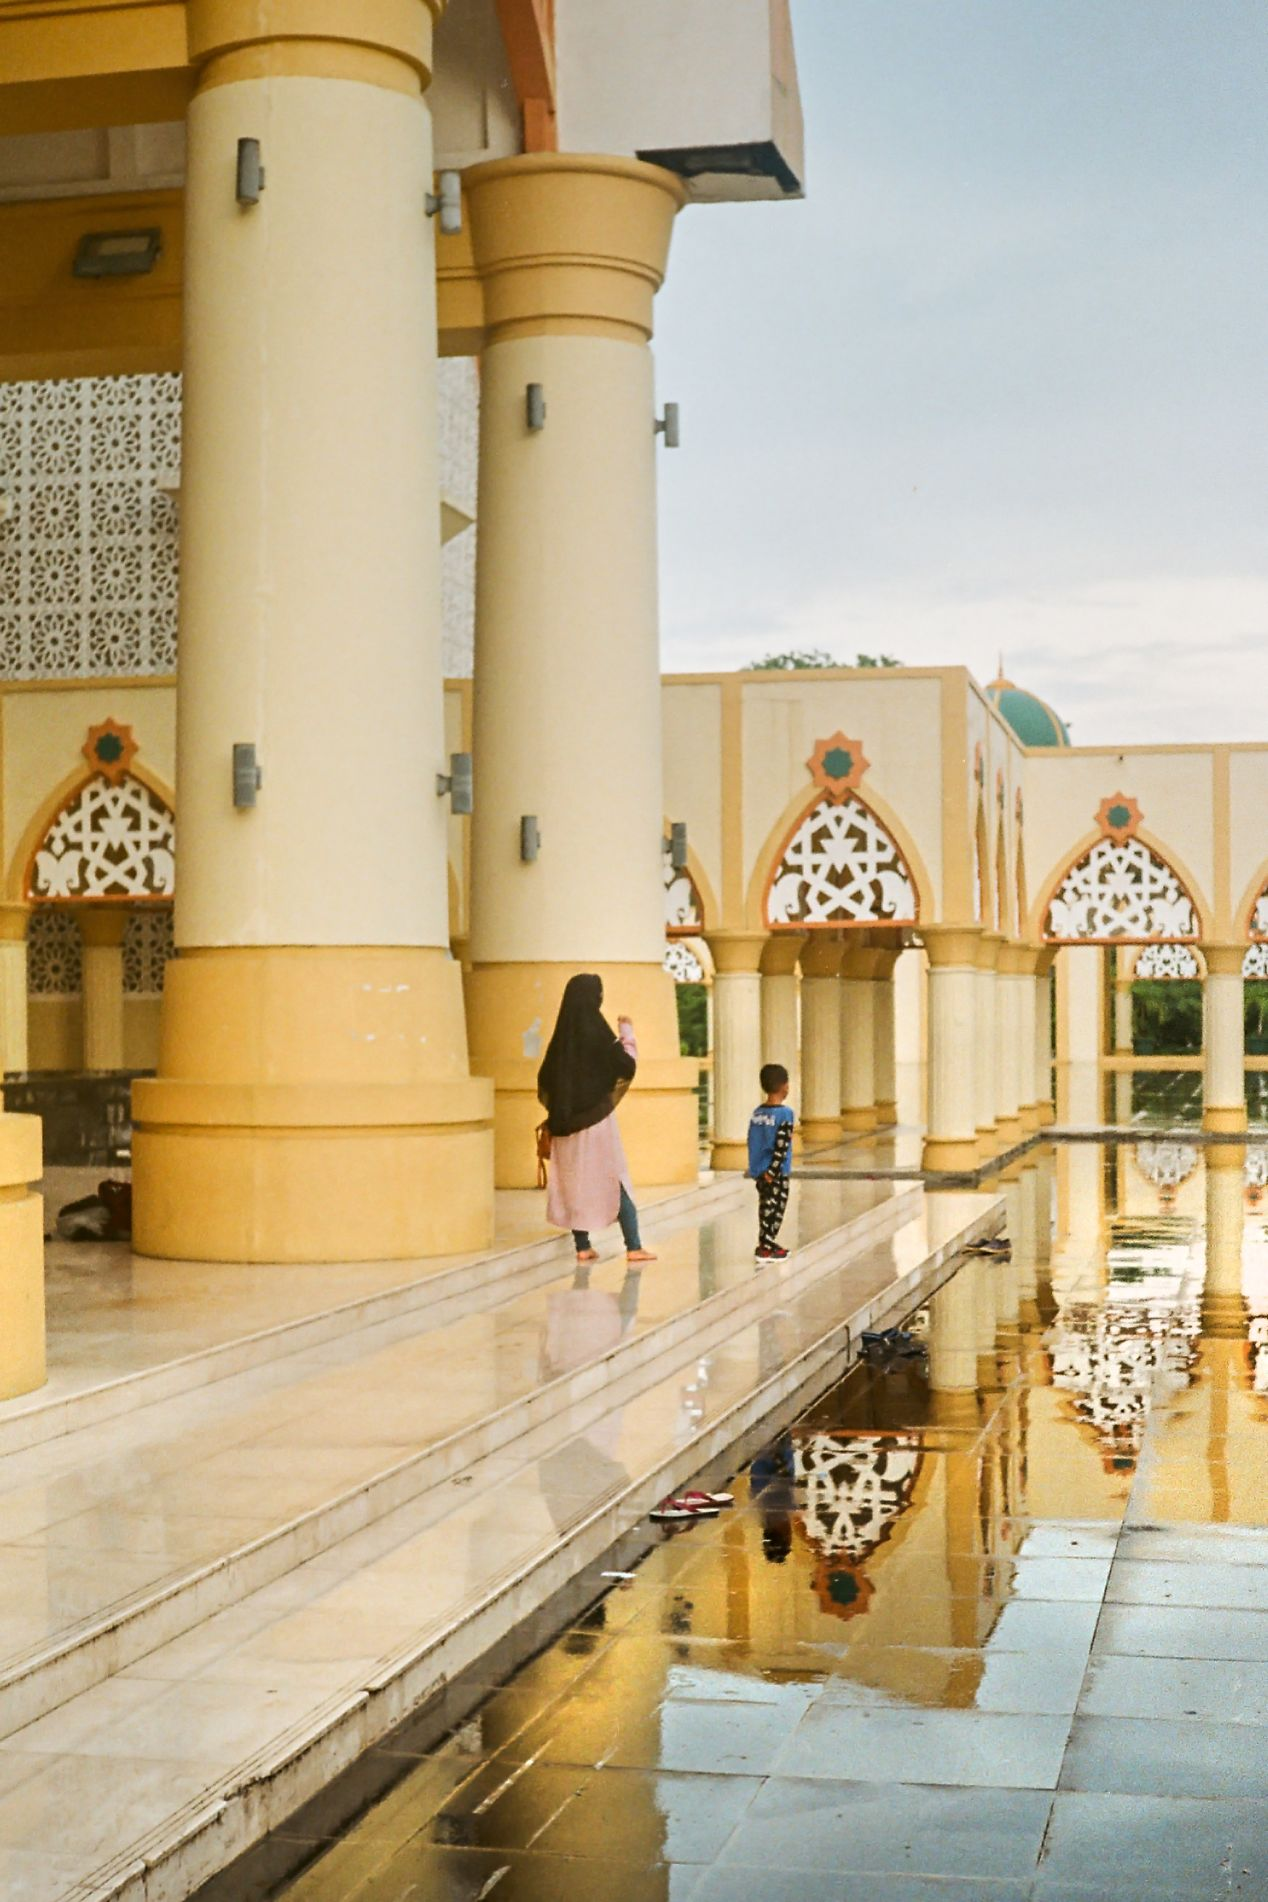 The main mosque, after the rain. Captured on Fuji Superia X-Tra 400.